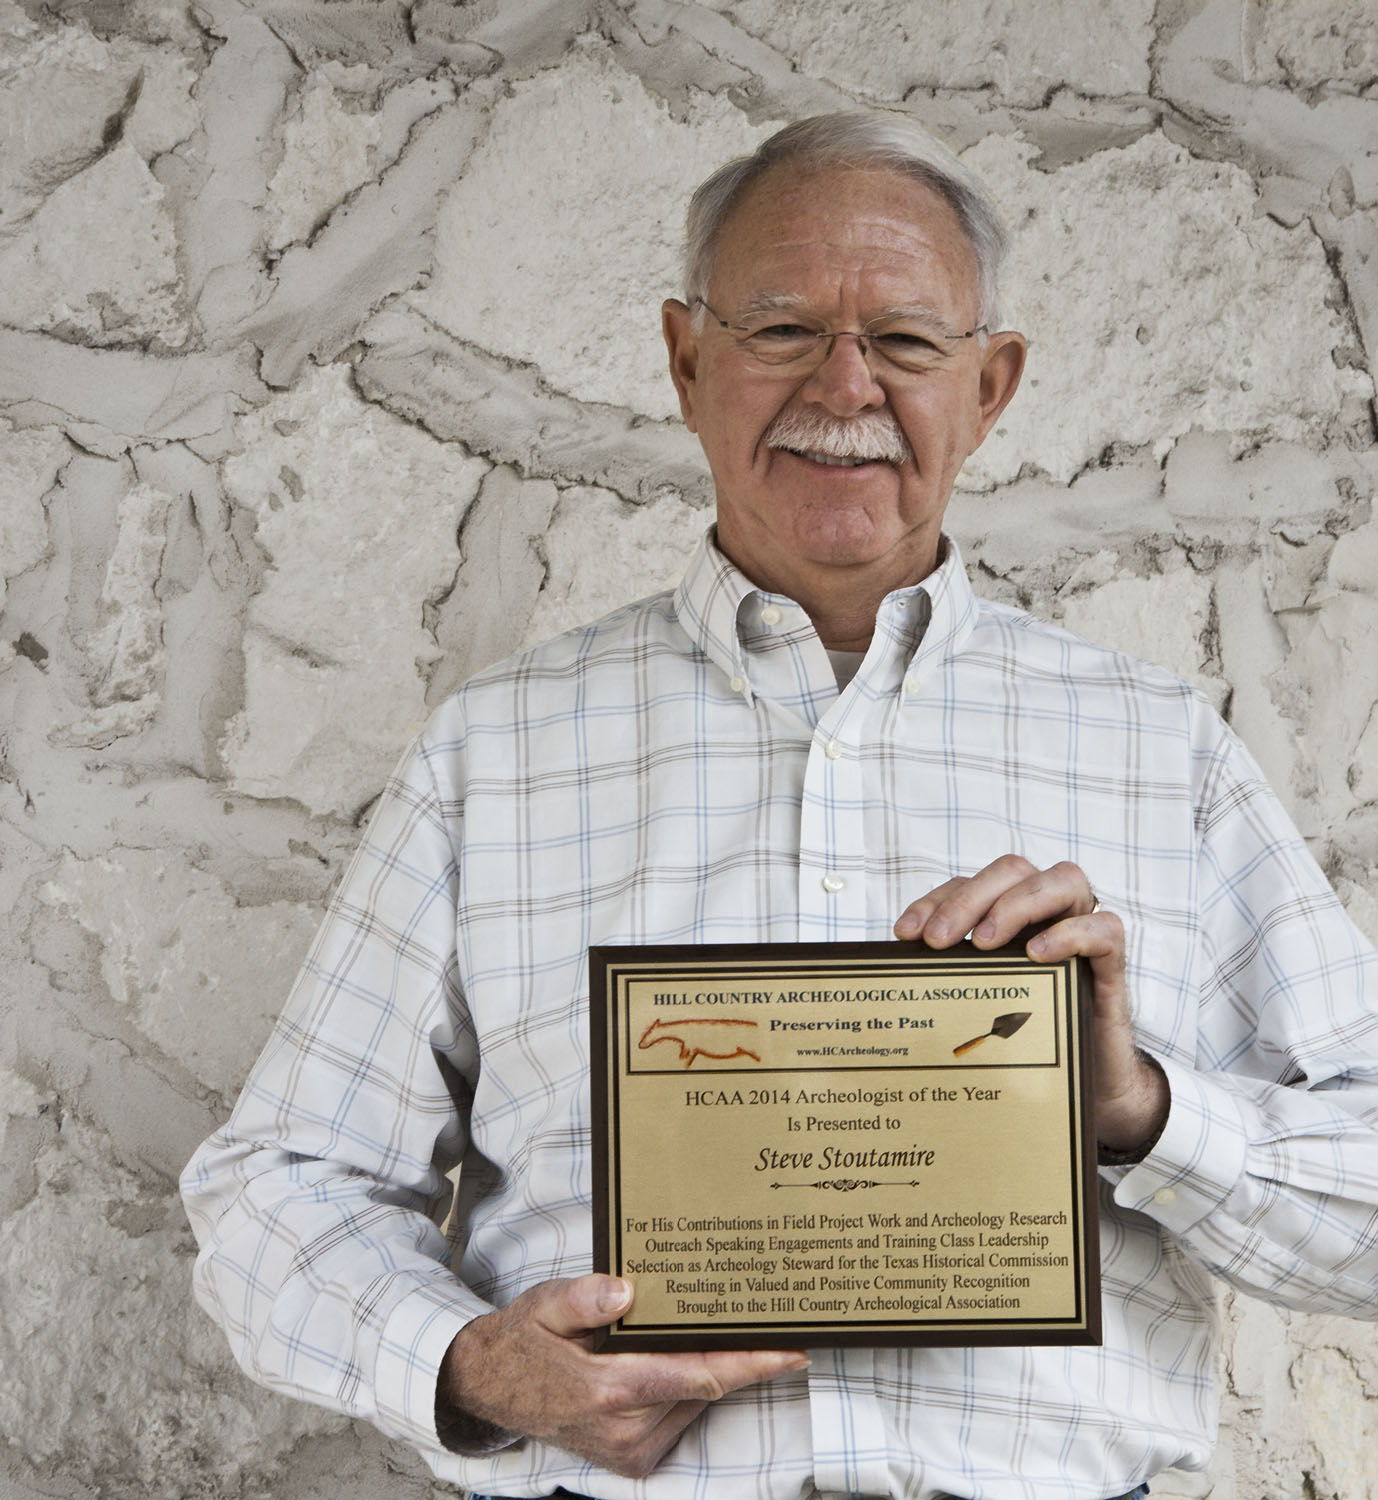 Steve Stoutamire, 2014 Archeologist of the Year